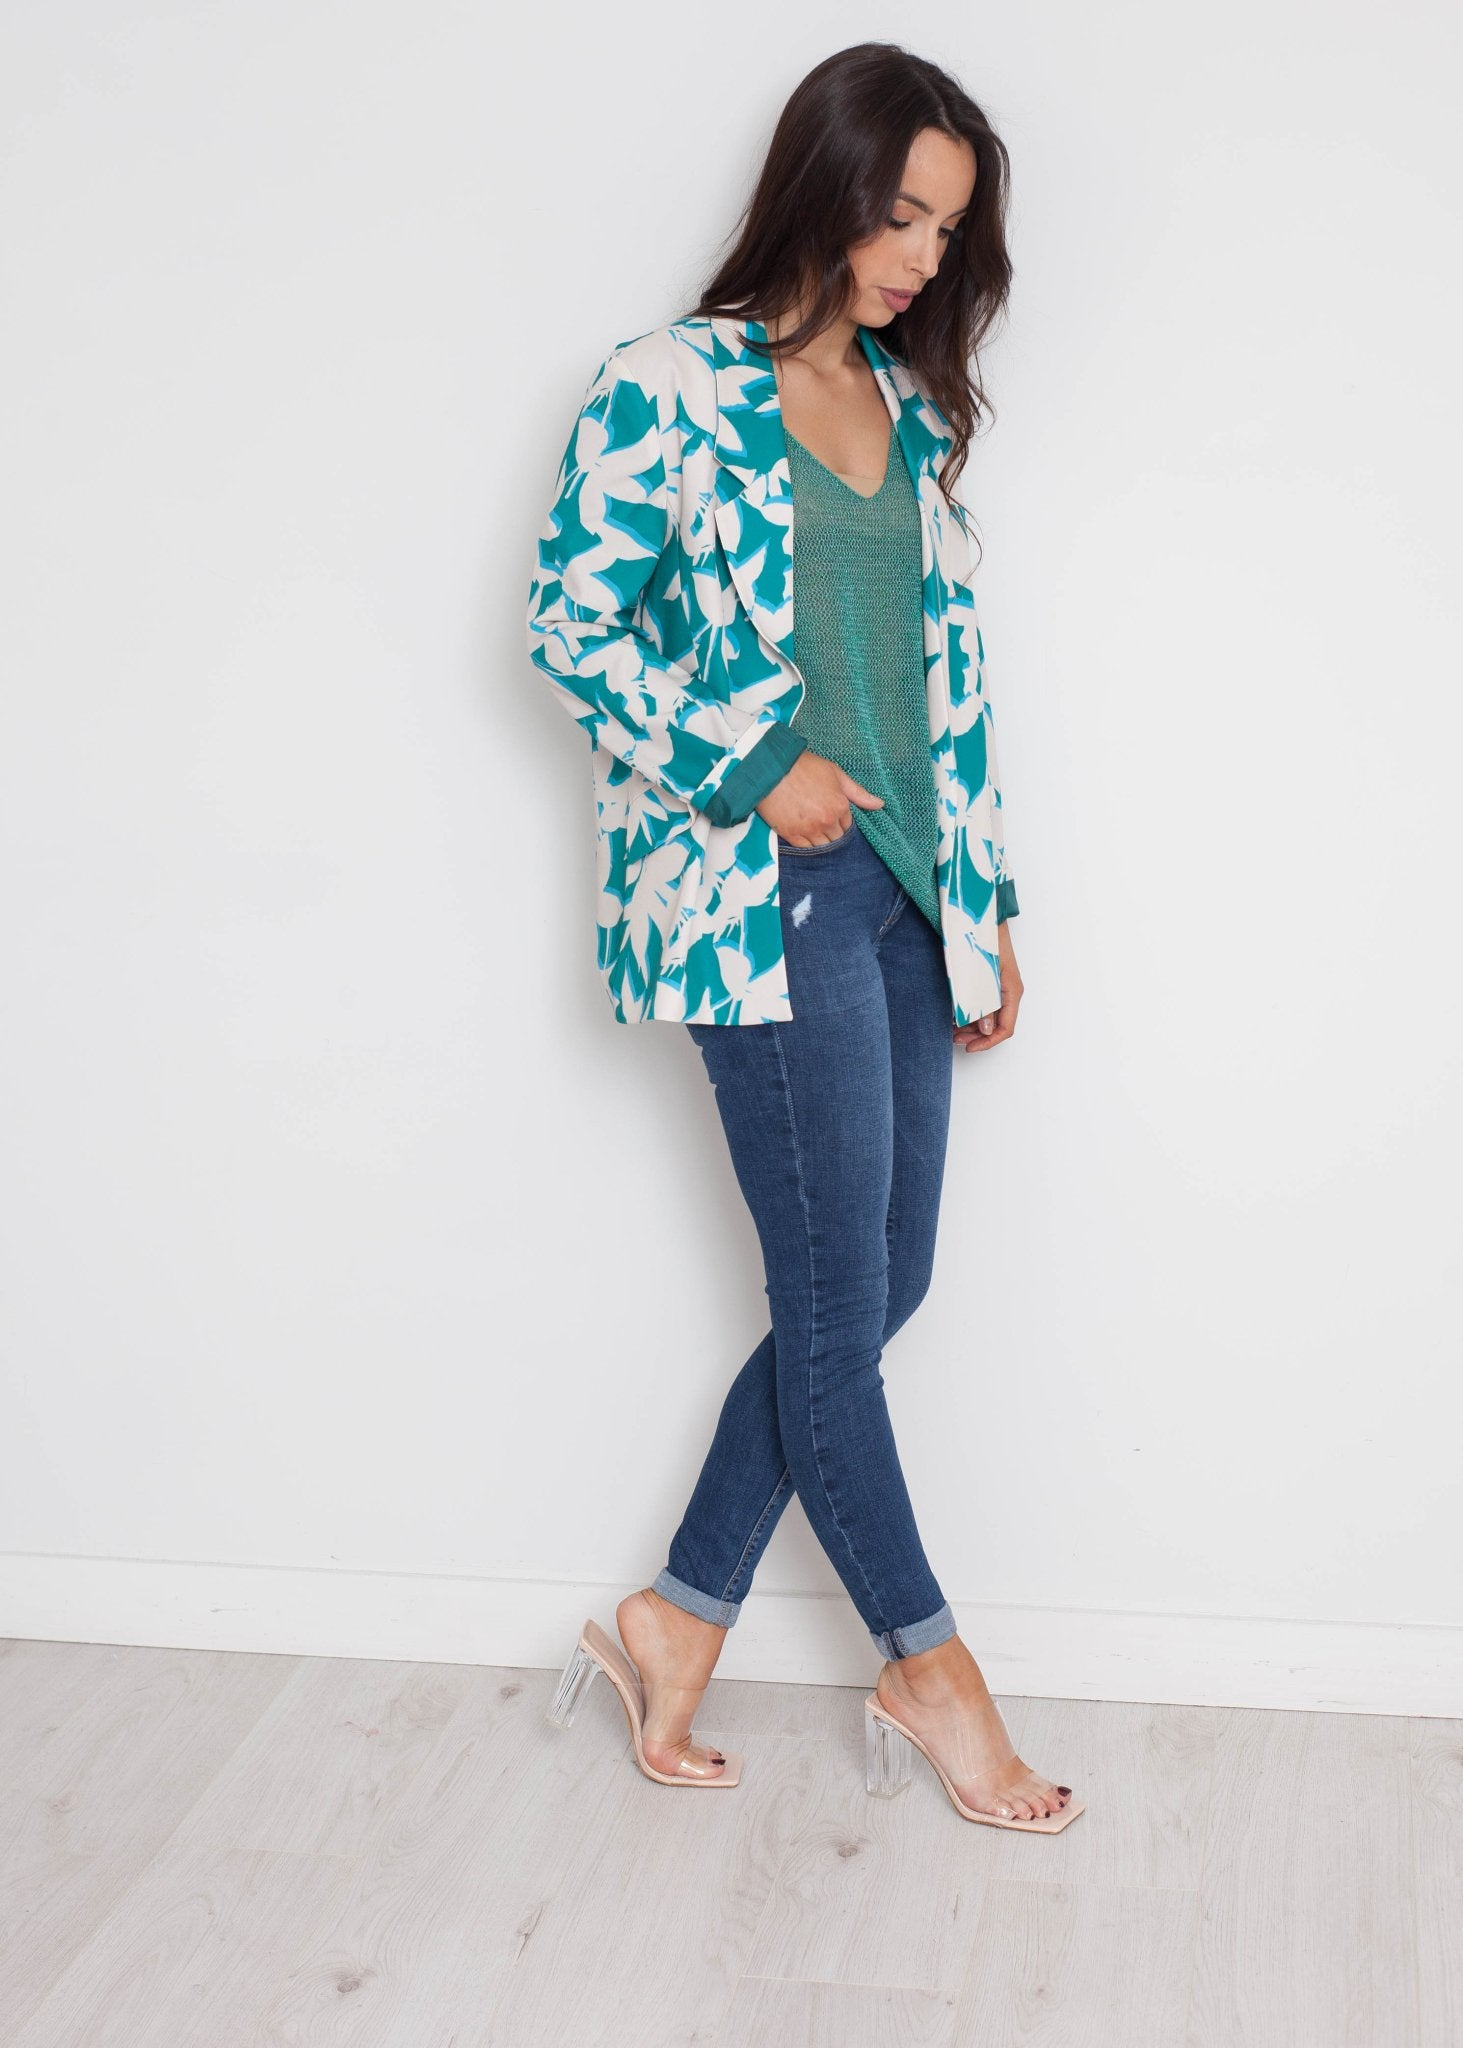 Heidi Printed Blazer In Teal Mix - The Walk in Wardrobe